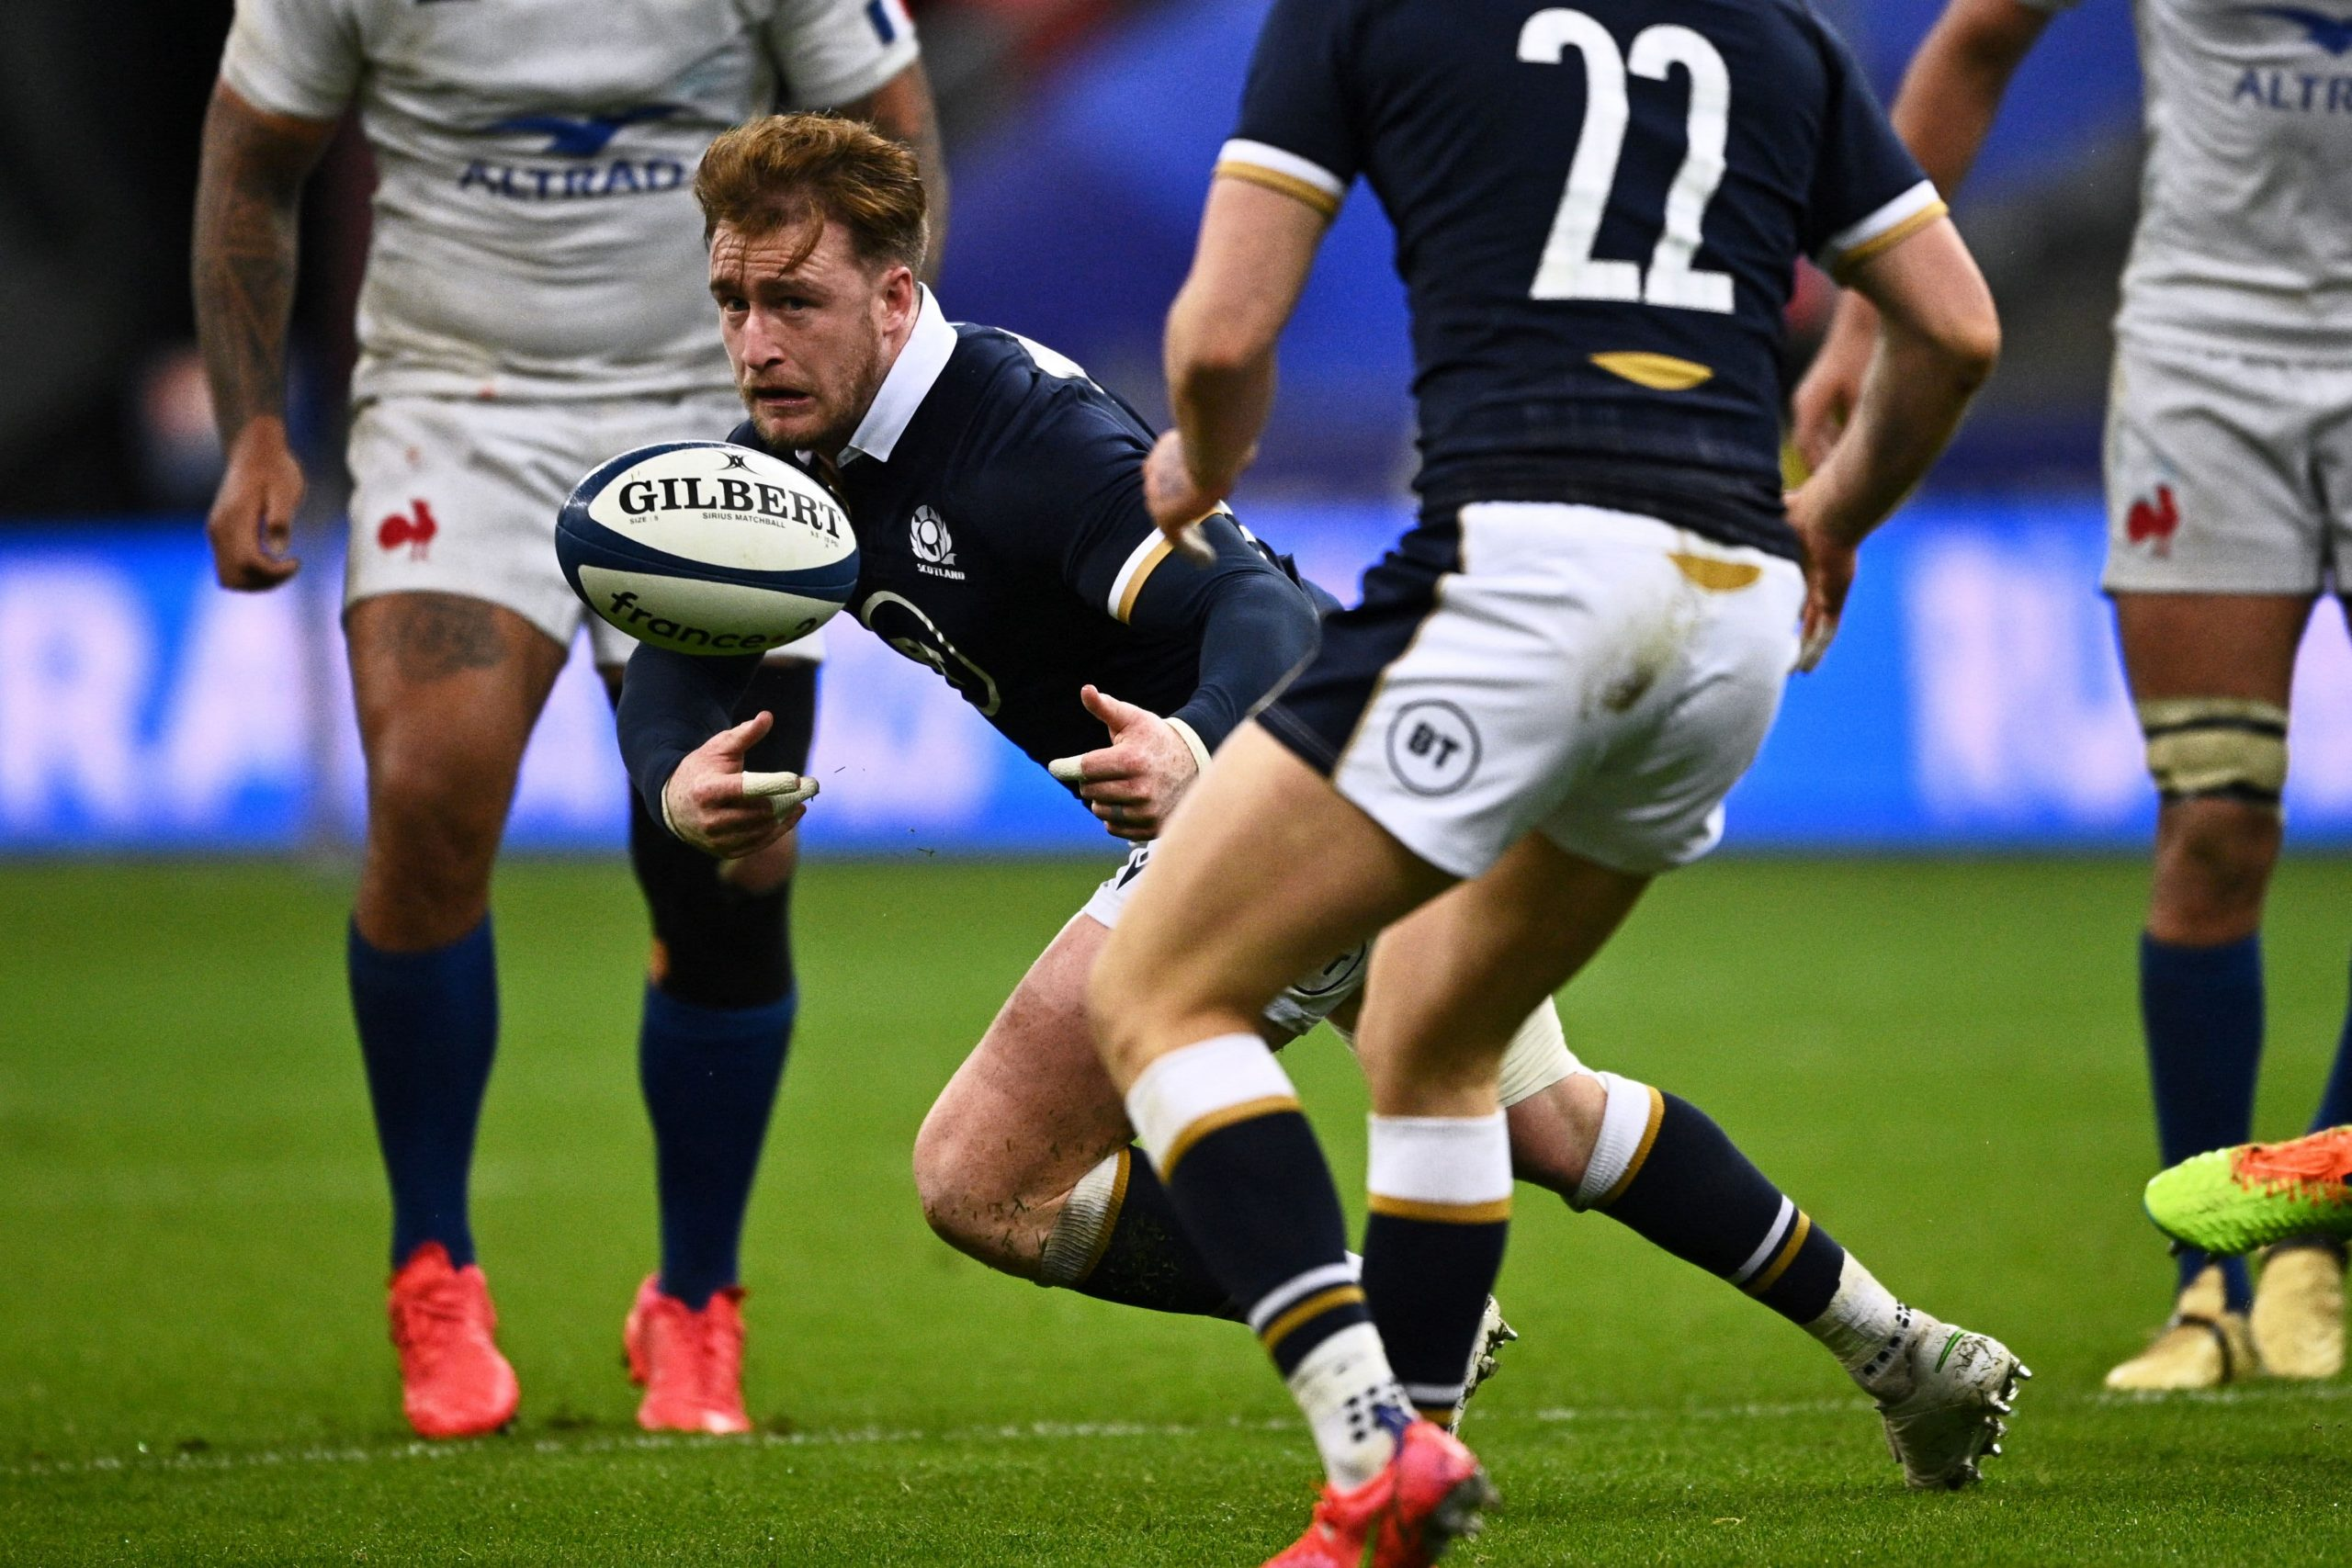 France 23-27 Scotland: Wales crowned Six Nations champions as visitors win in Paris despite Finn Russell red card